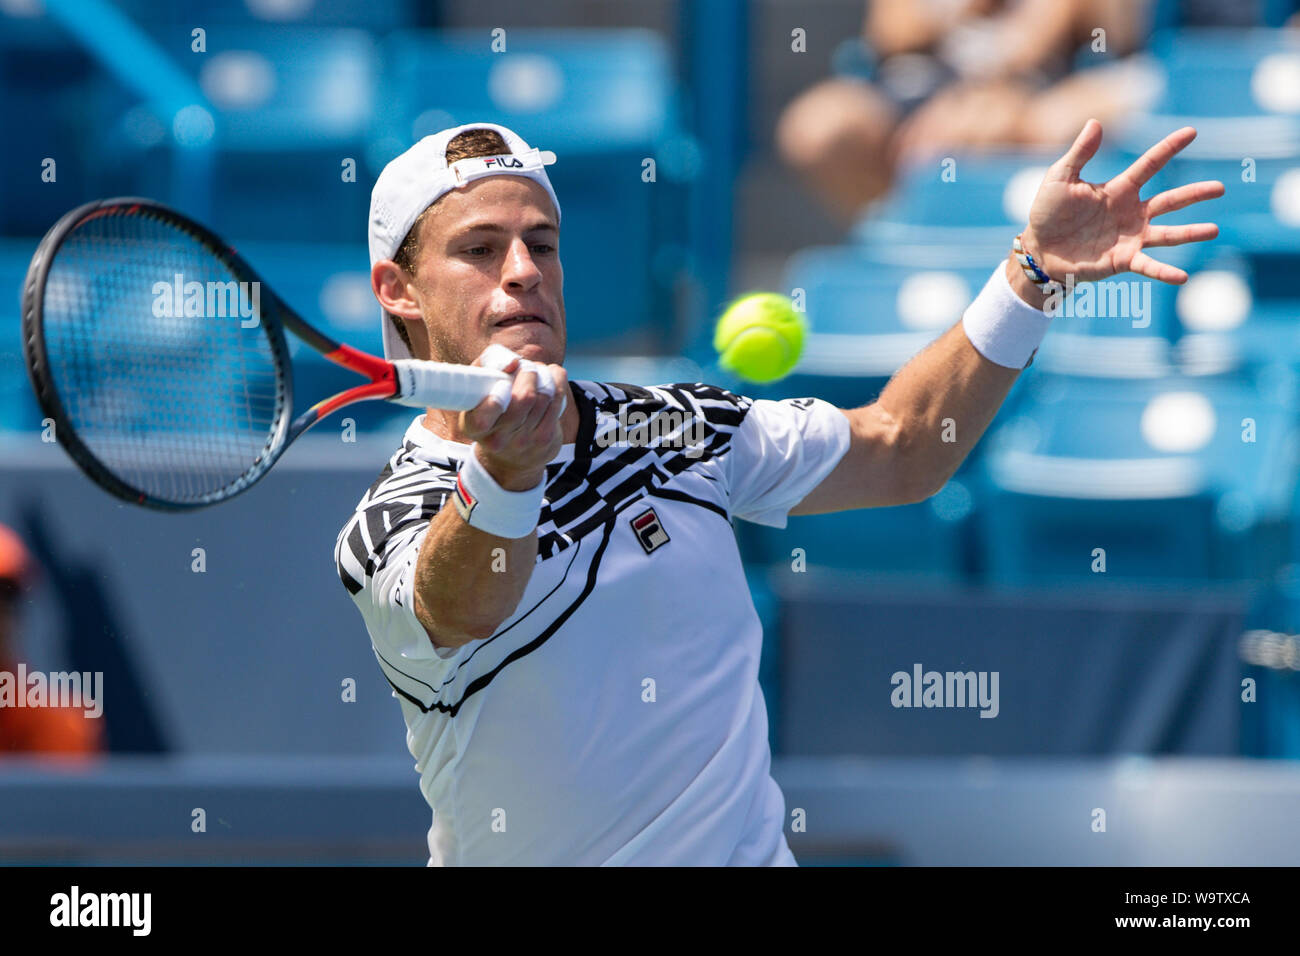 Mason Ohio Usa 15th Aug 2019 Diego Schwartzman Arg Hits A Forehand Shot During Thursday S Round